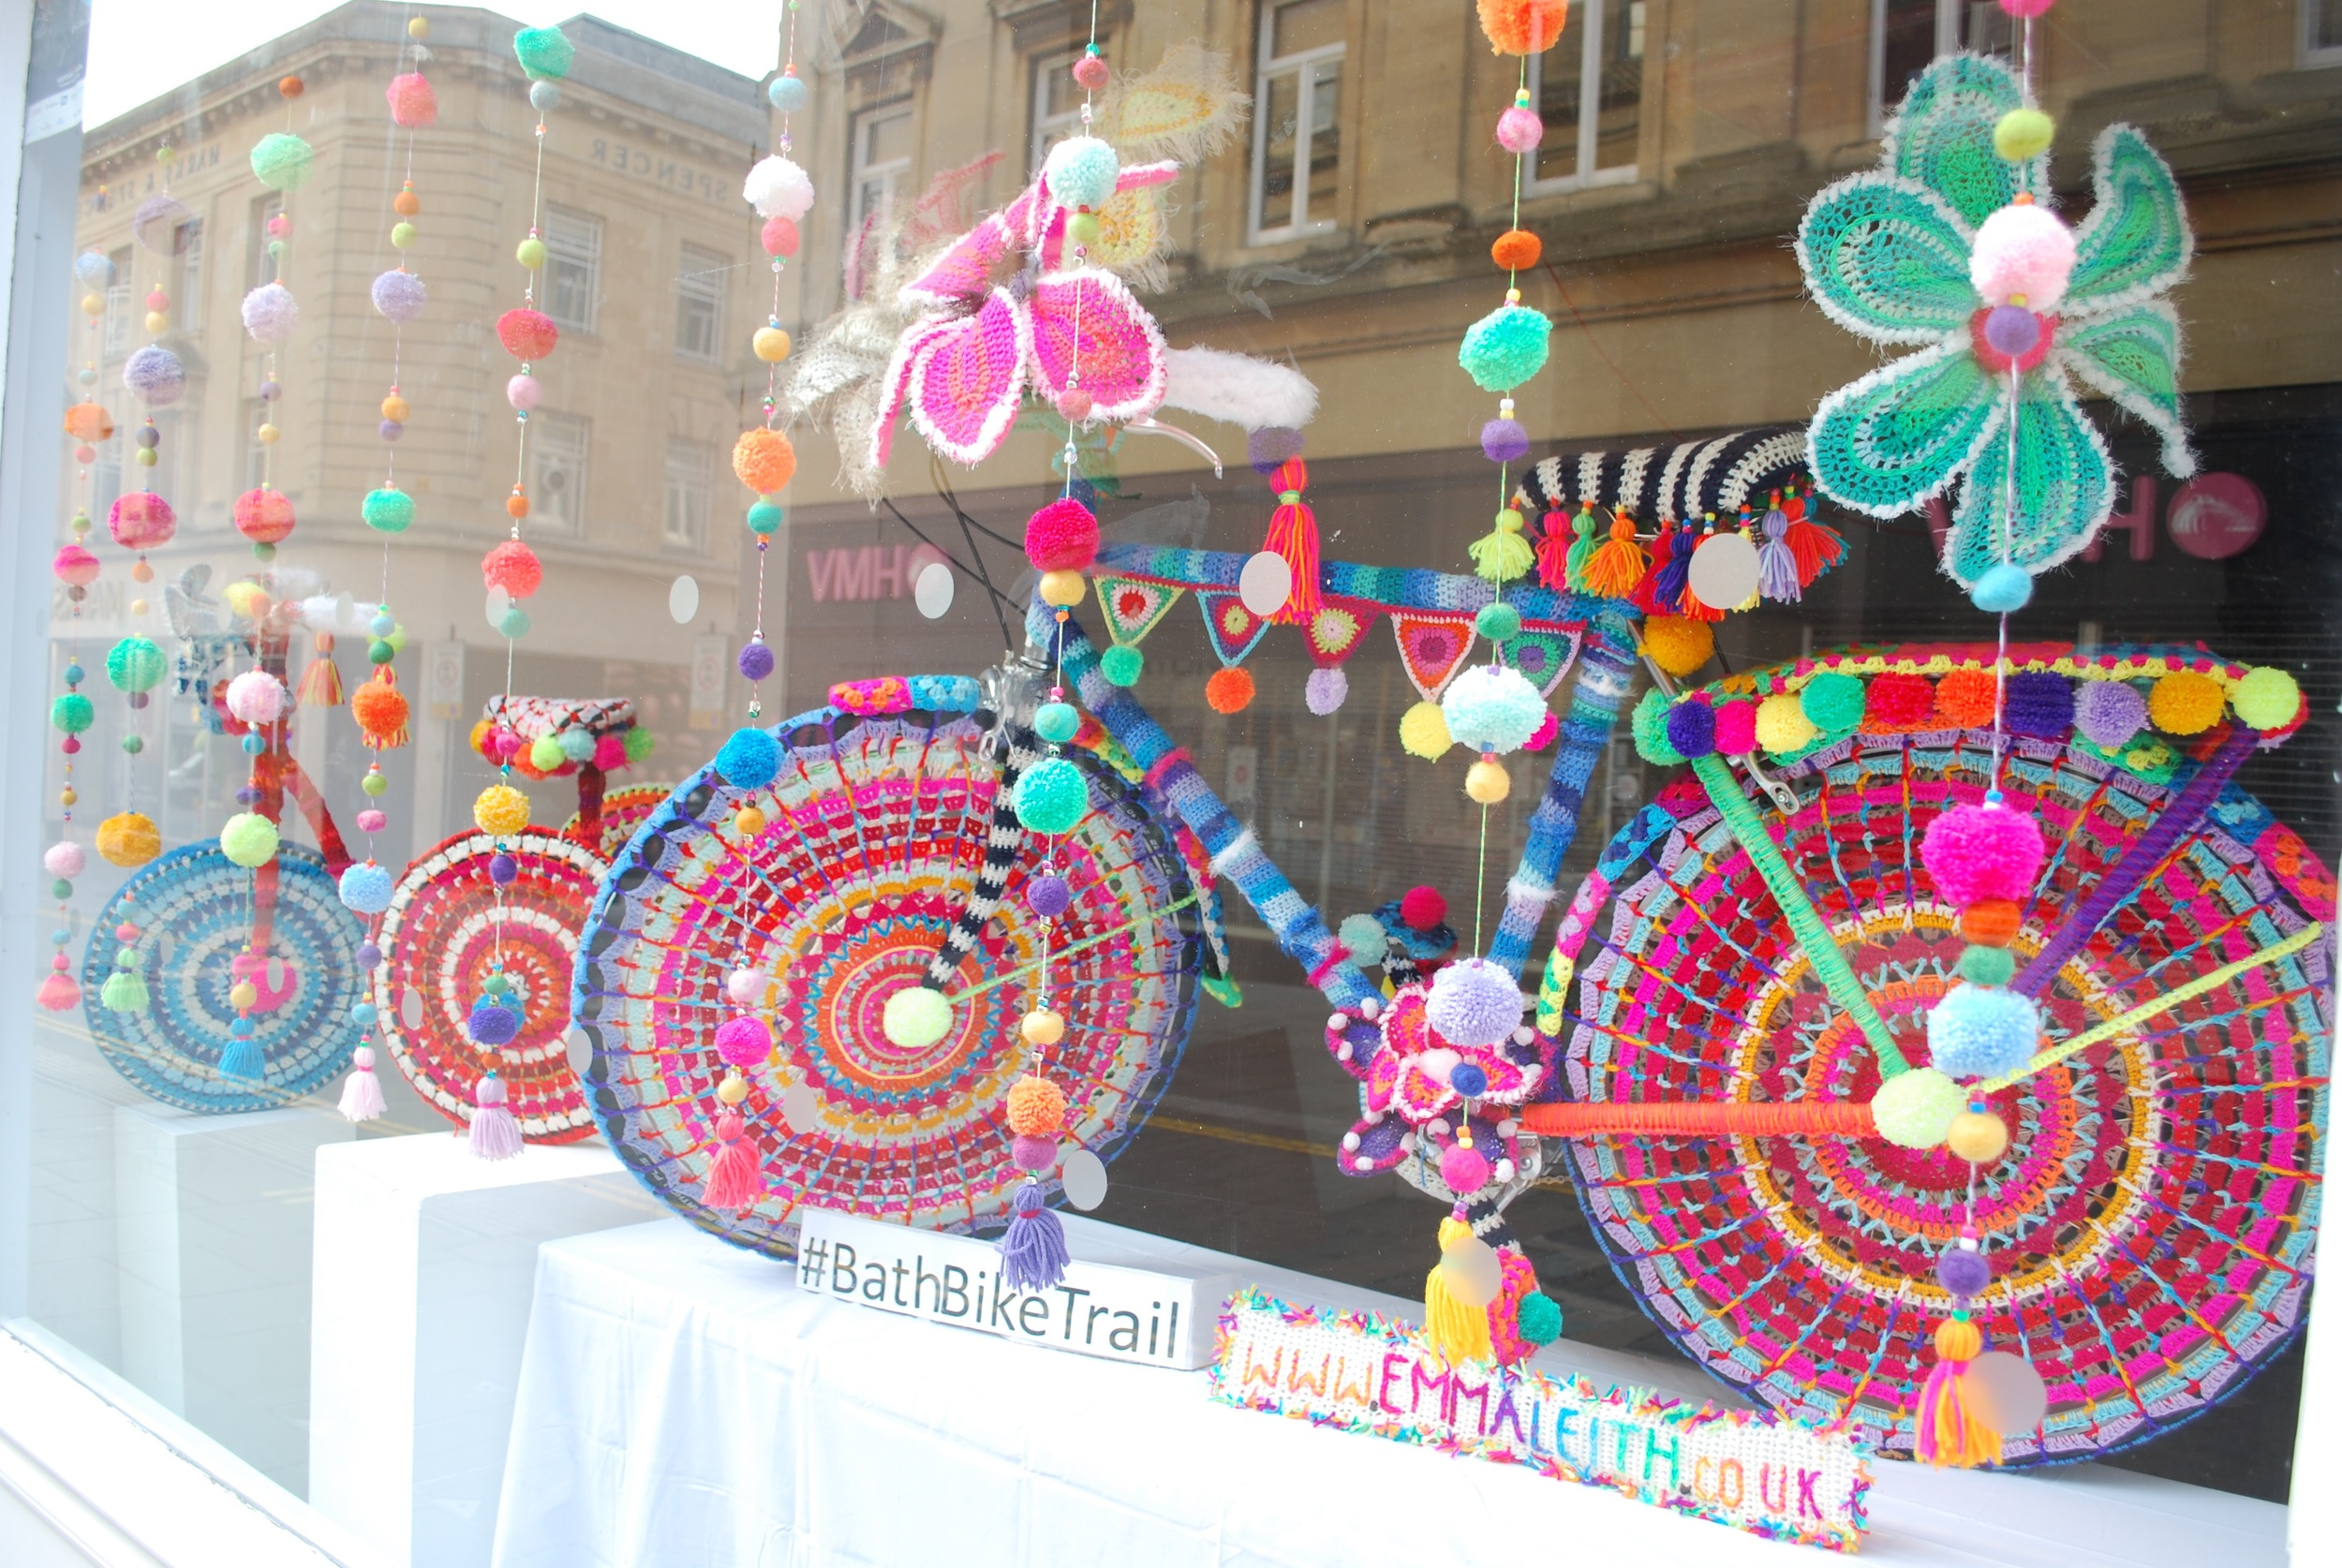 'Rio Carnival in Wool'. Yarn bomb bikes by Emma Leith in display in shop window in Bath